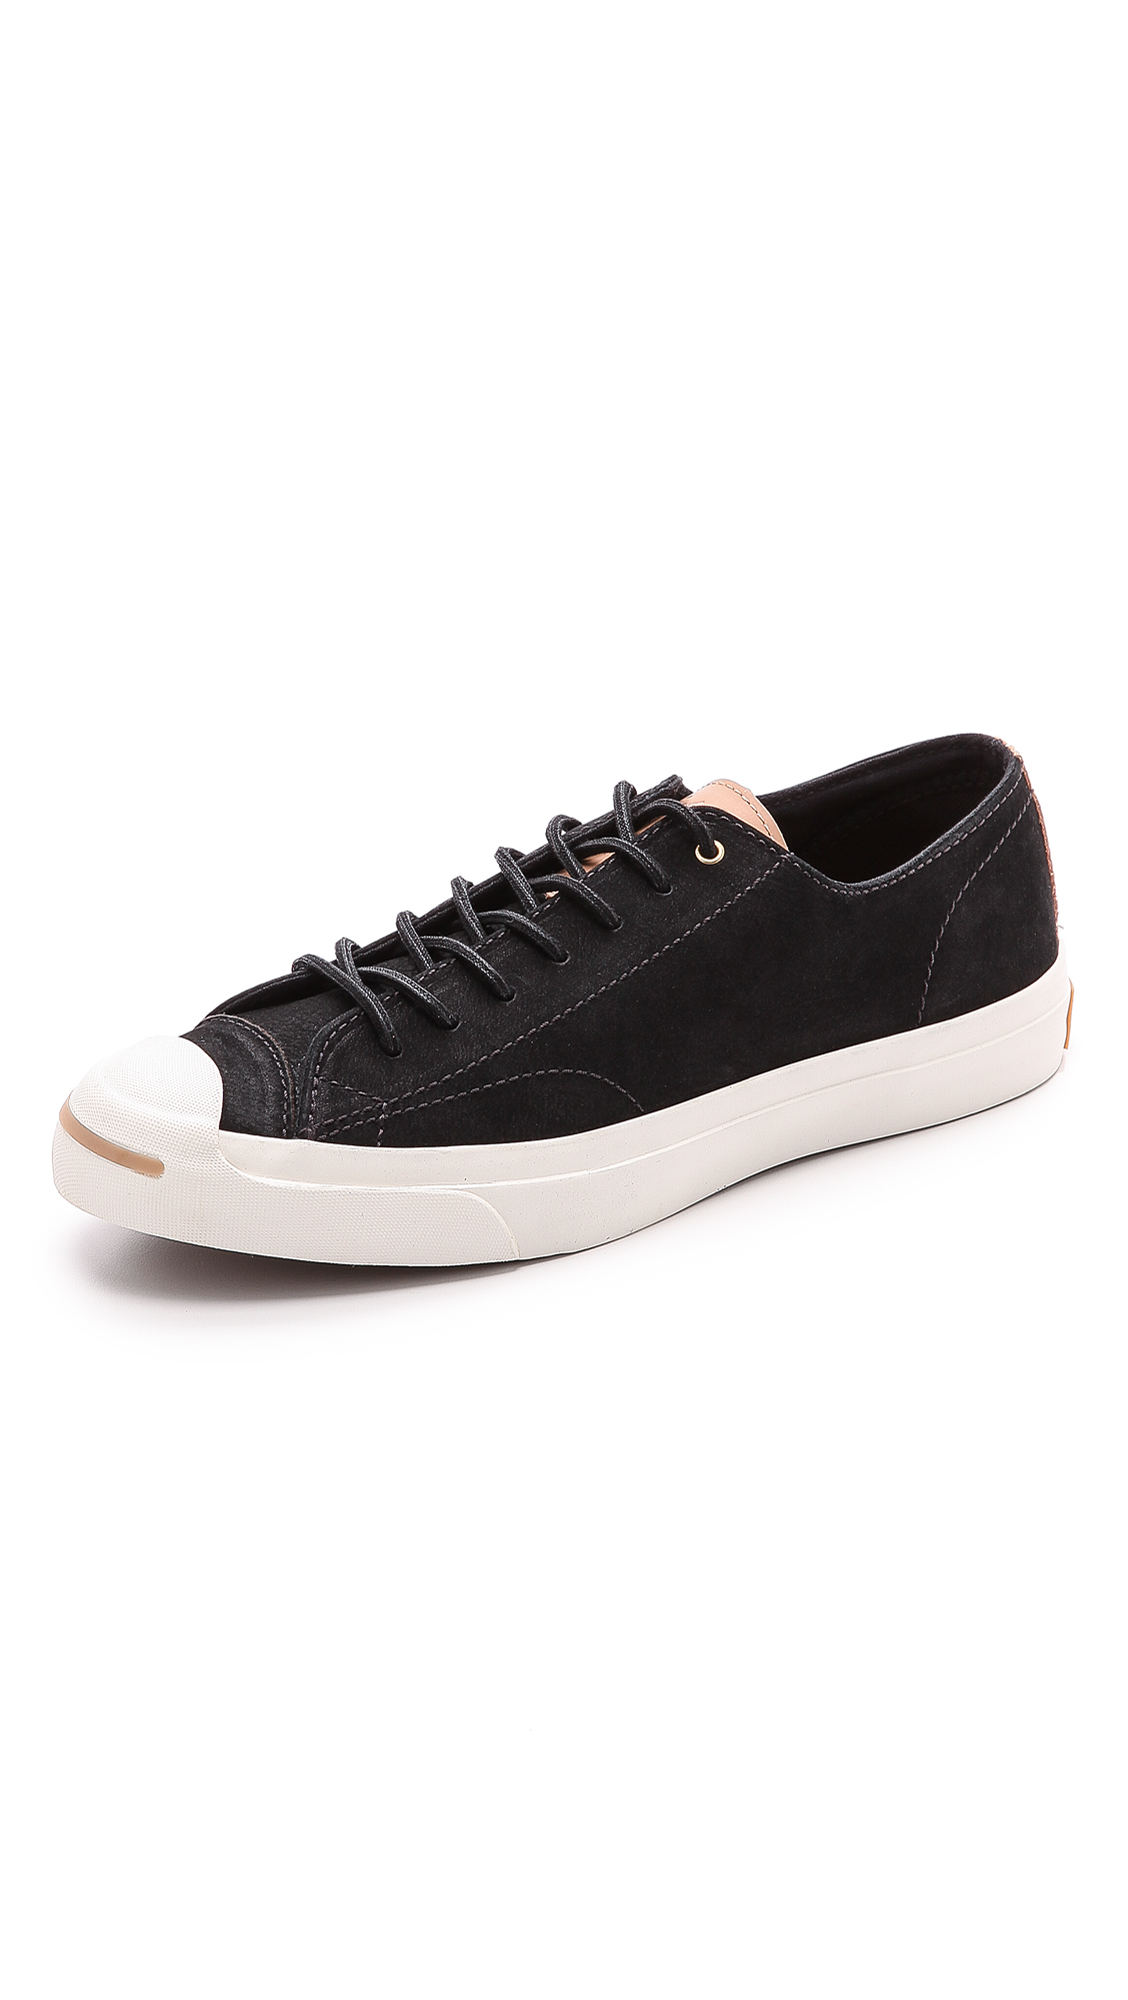 e1dfa533e5c3 Lyst - Converse Jack Purcell Split Tongue Jack Sneakers in Black for Men